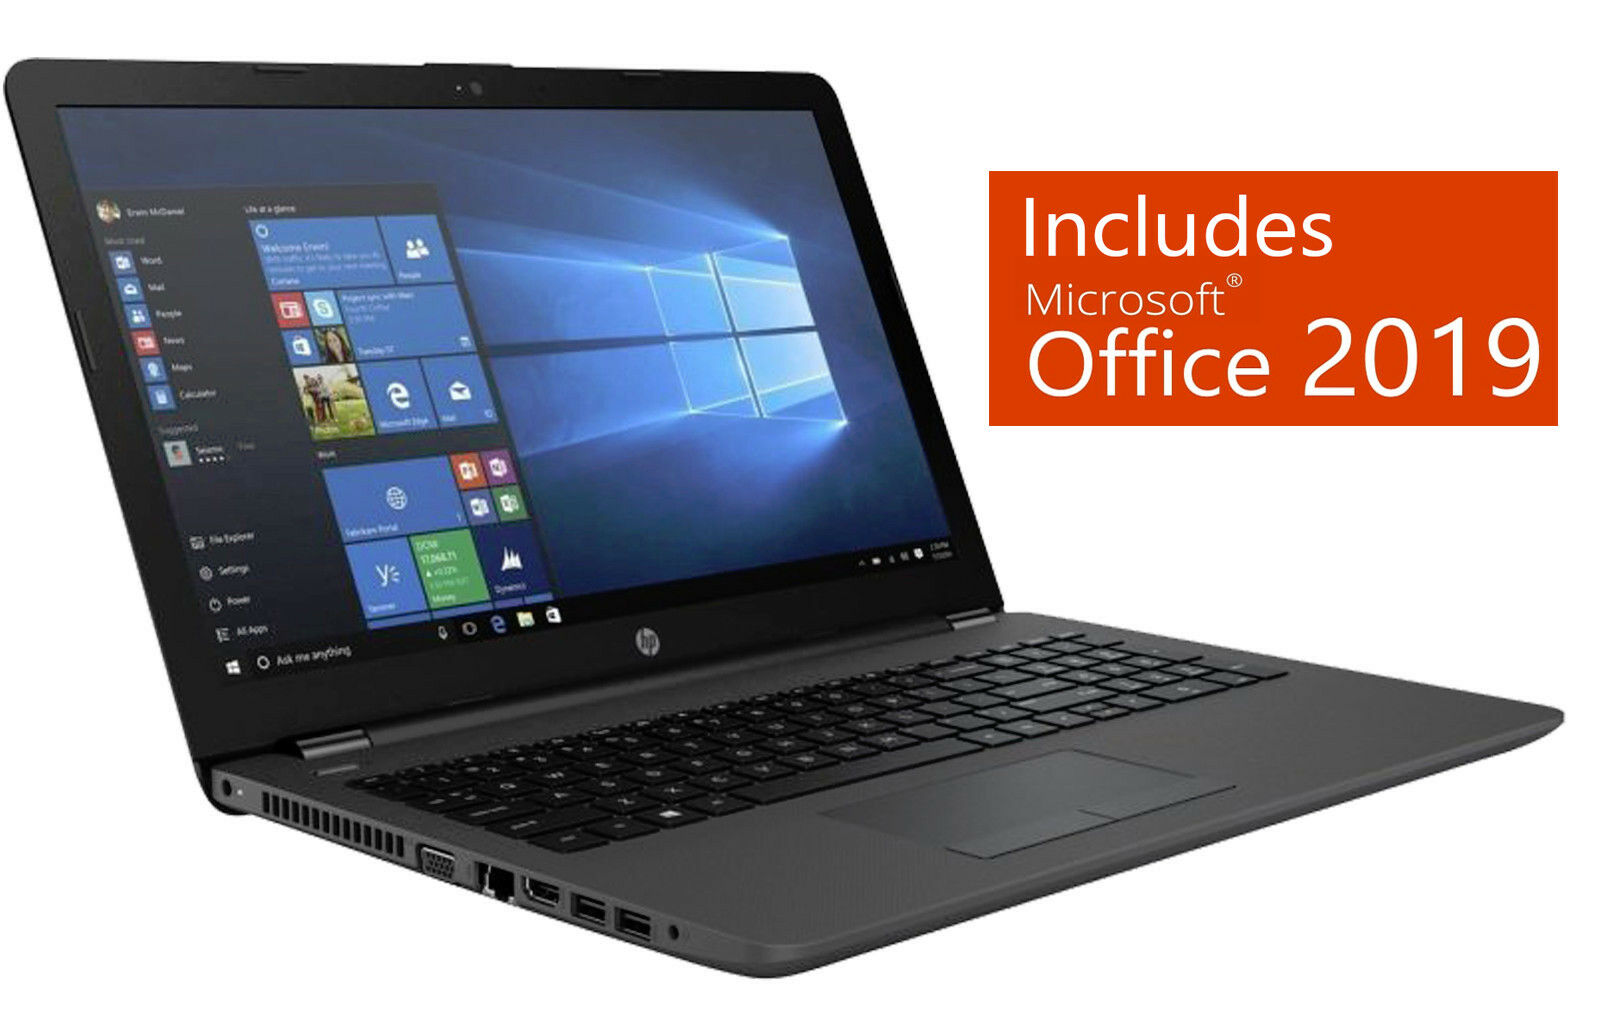 Laptop Windows - New HP Business Laptop - with Office,PC, DVD Drive, Portable Windows 10 Computer